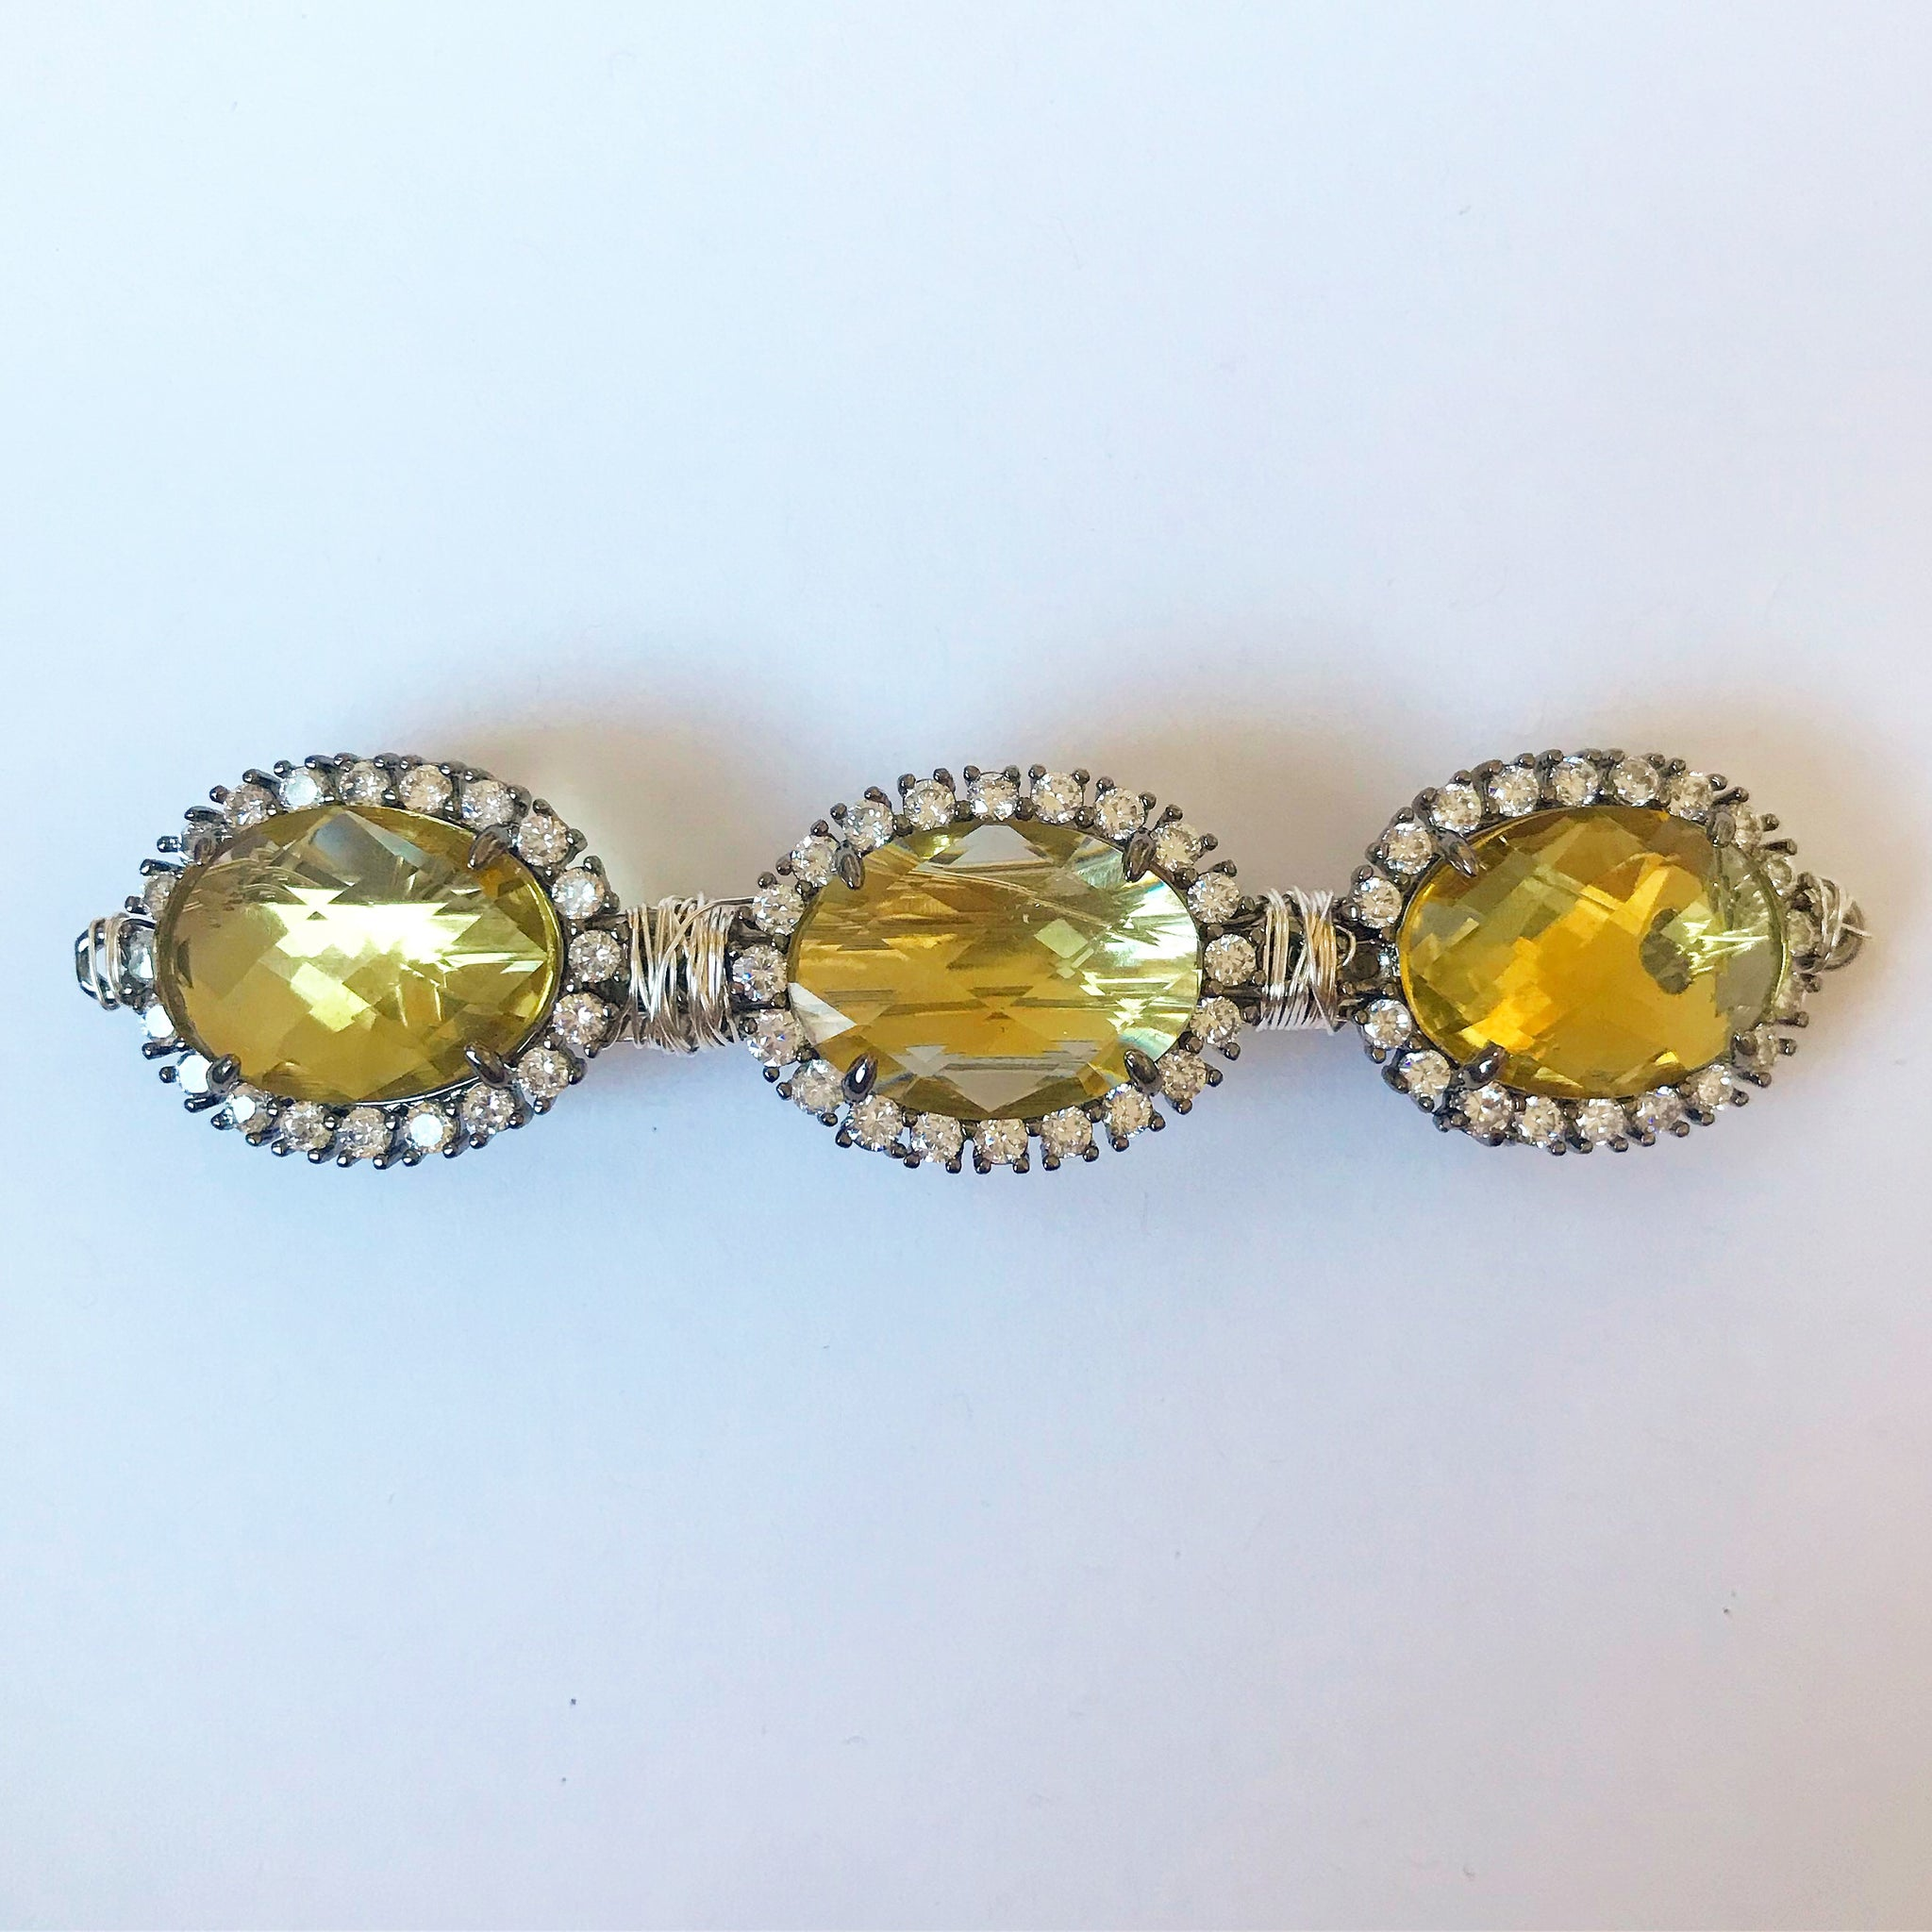 Crystal Gemstone Barrette